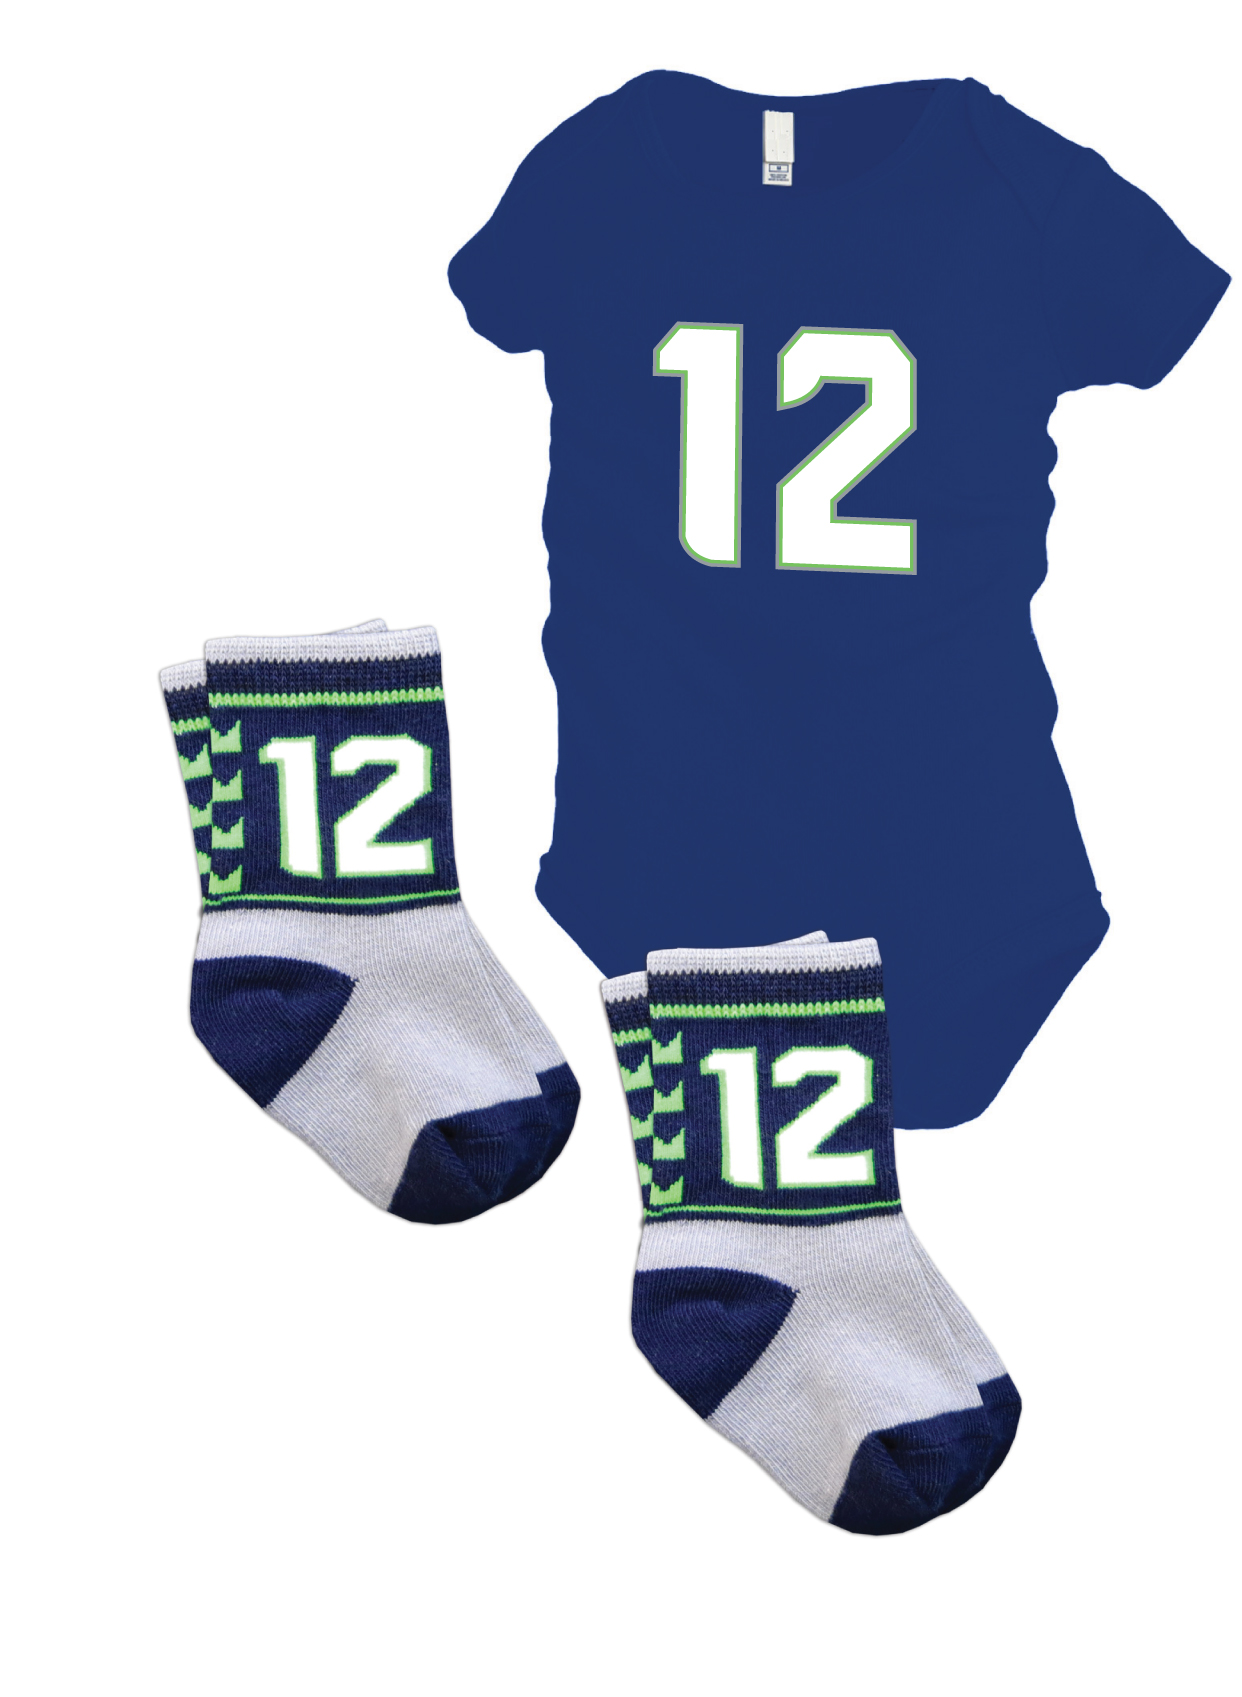 Seattle Seahawks newborn baby #12 gift set with 12th baby onesie and 2 pairs of #12 socks.